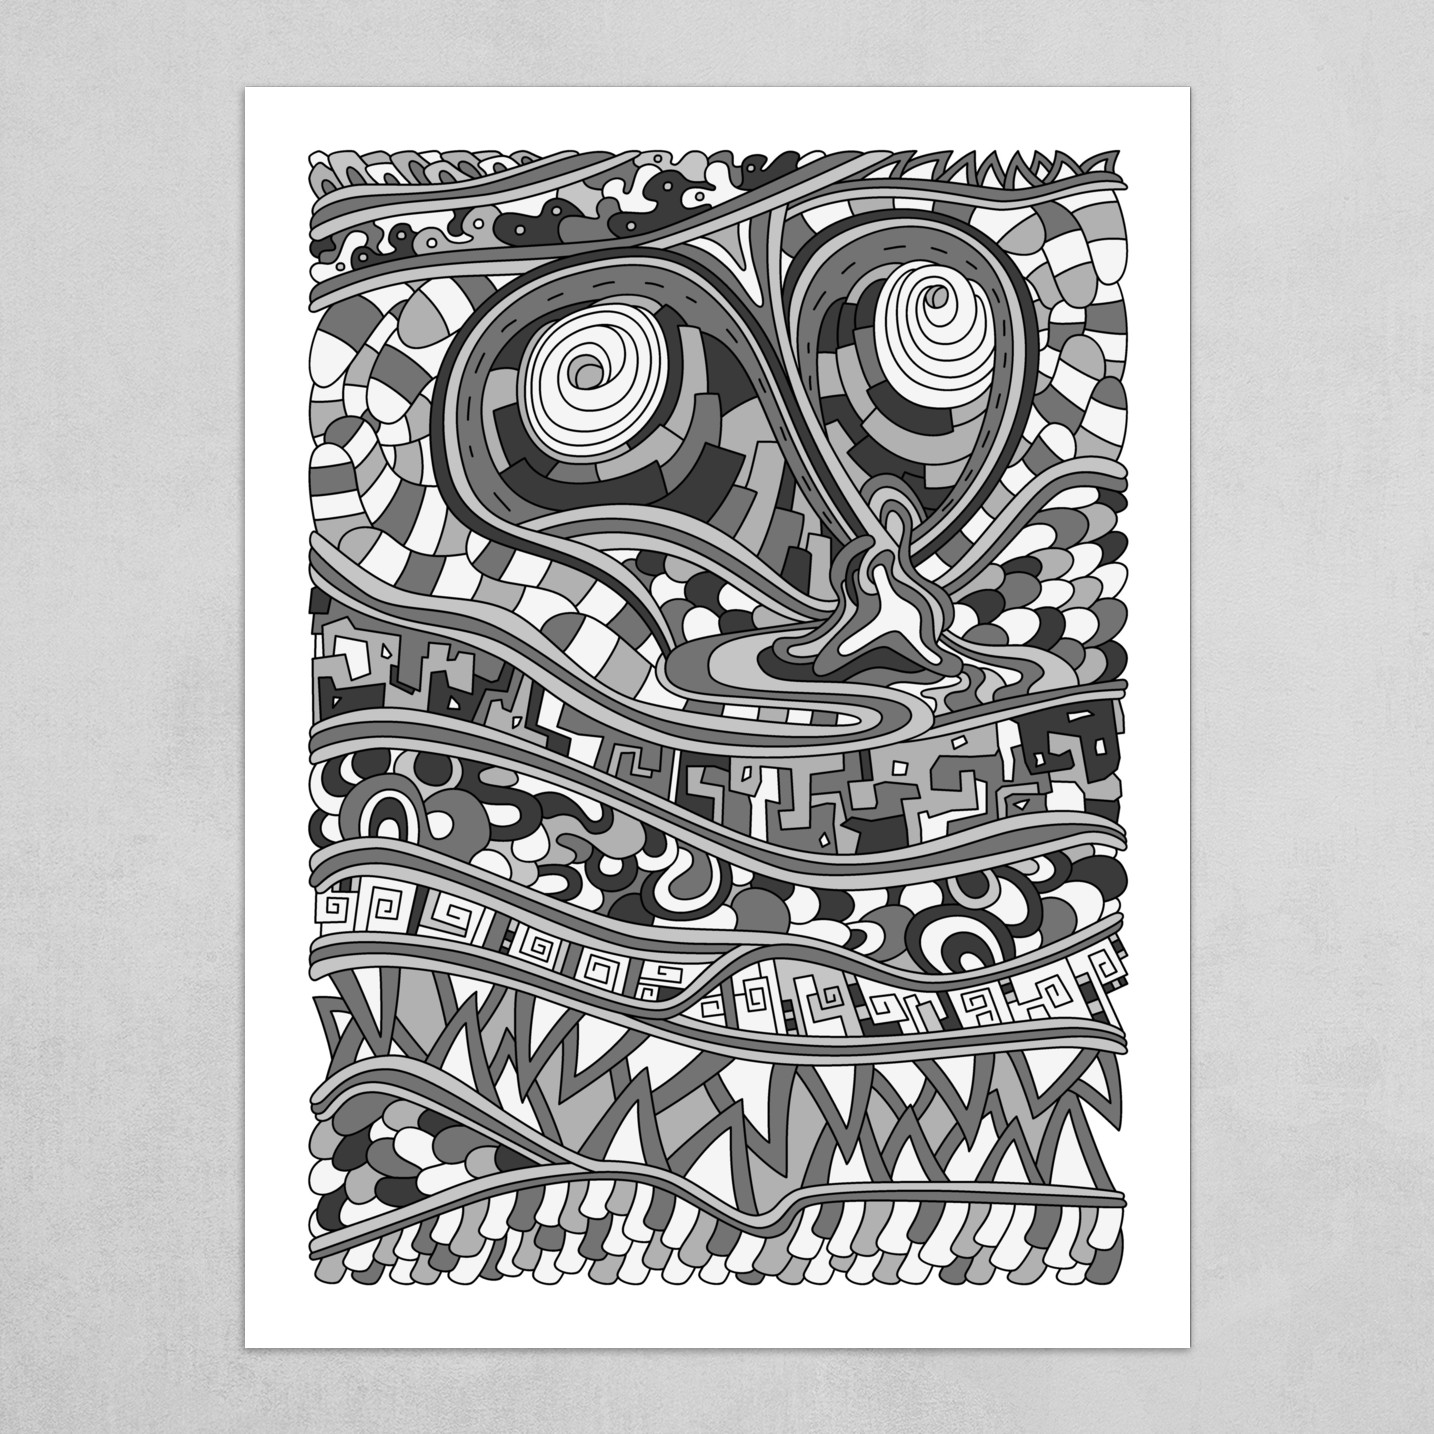 Wandering Abstract Line Art 03: Grayscale